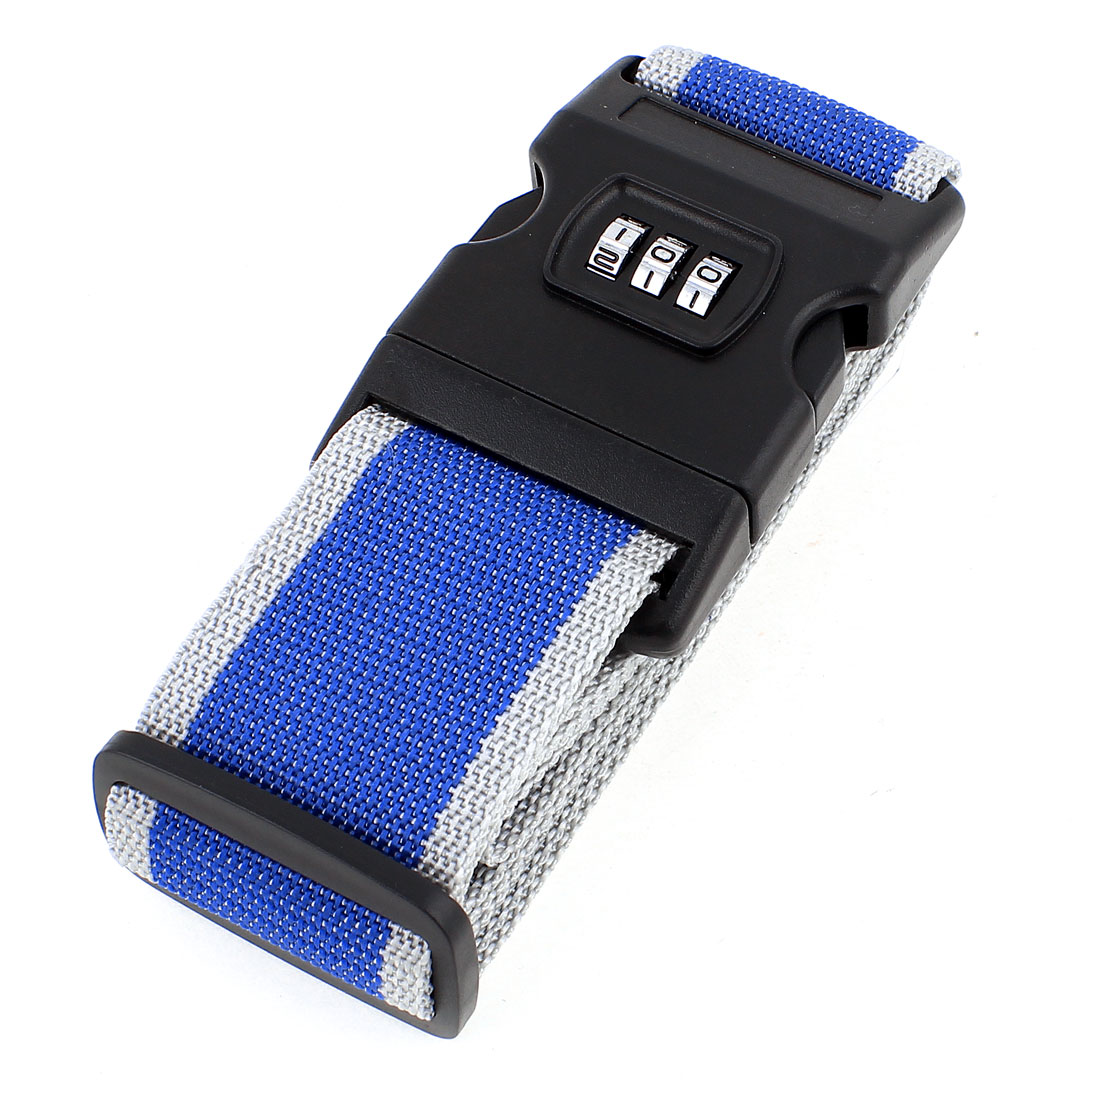 Release Buckle 3 Digits Password Combination Luggage Strap Blue Gray 2M Long